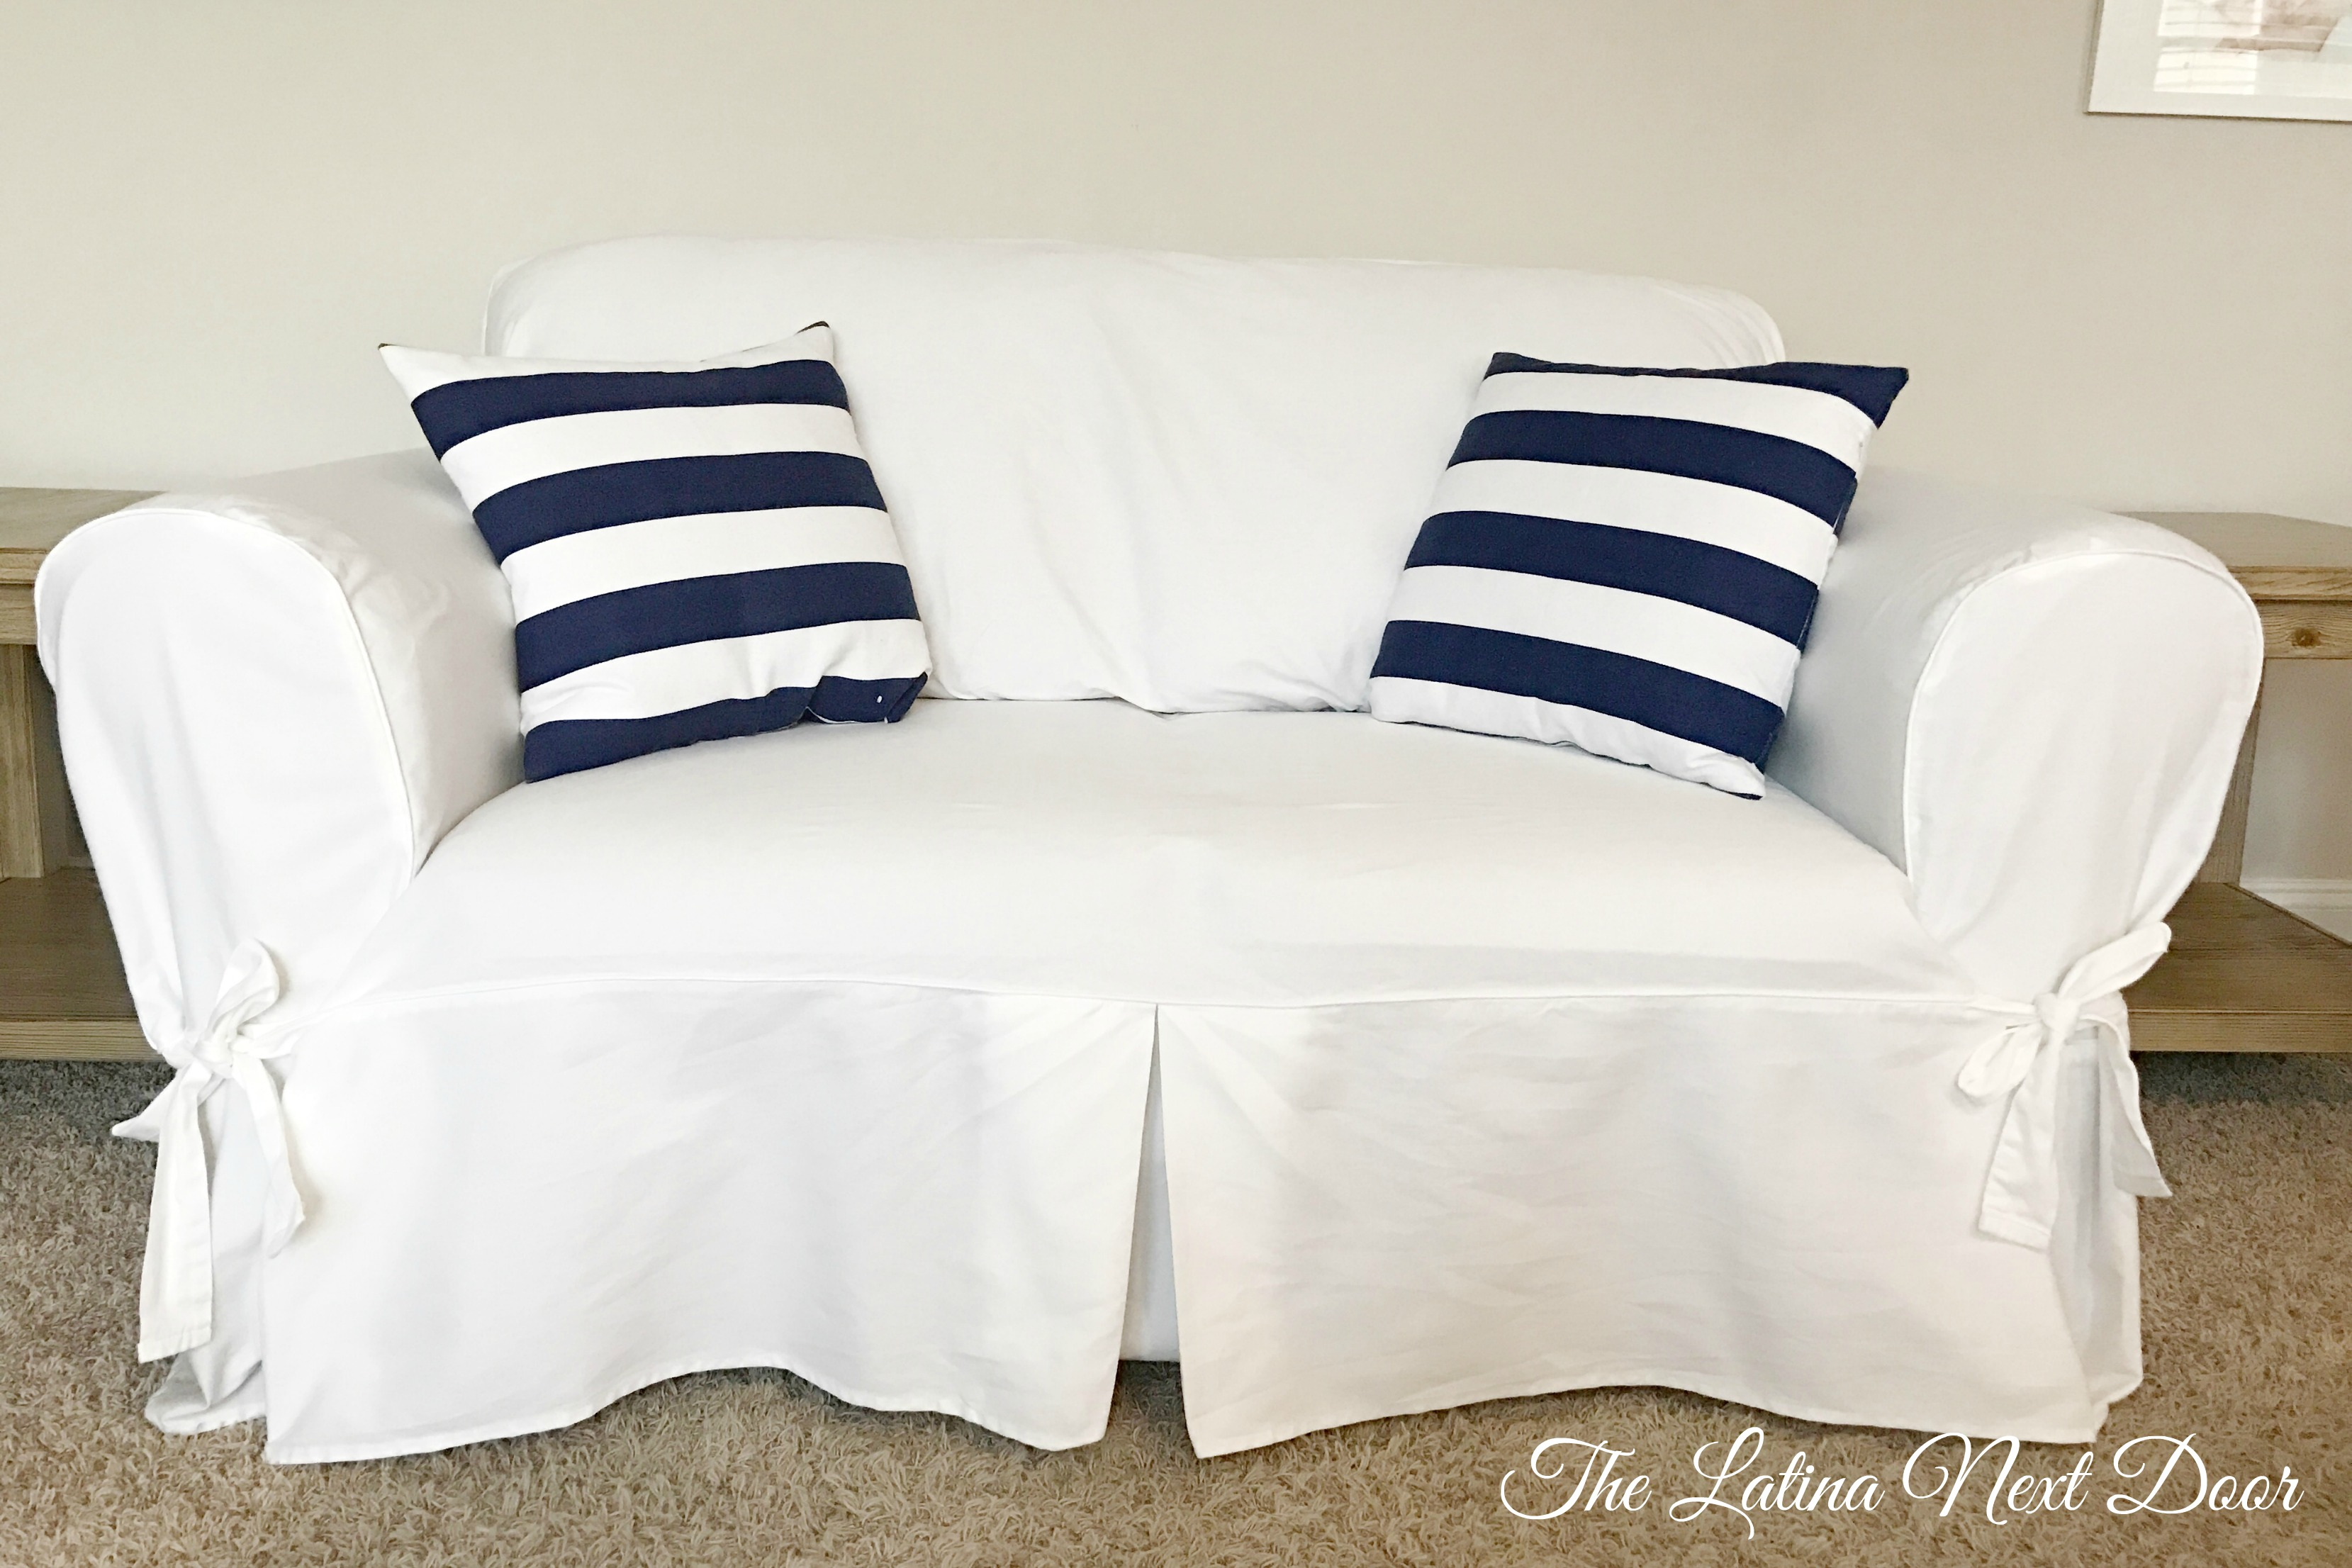 slipcover sofa bed bath beyond plum colored sofas pottery barn white look for less - the latina next door